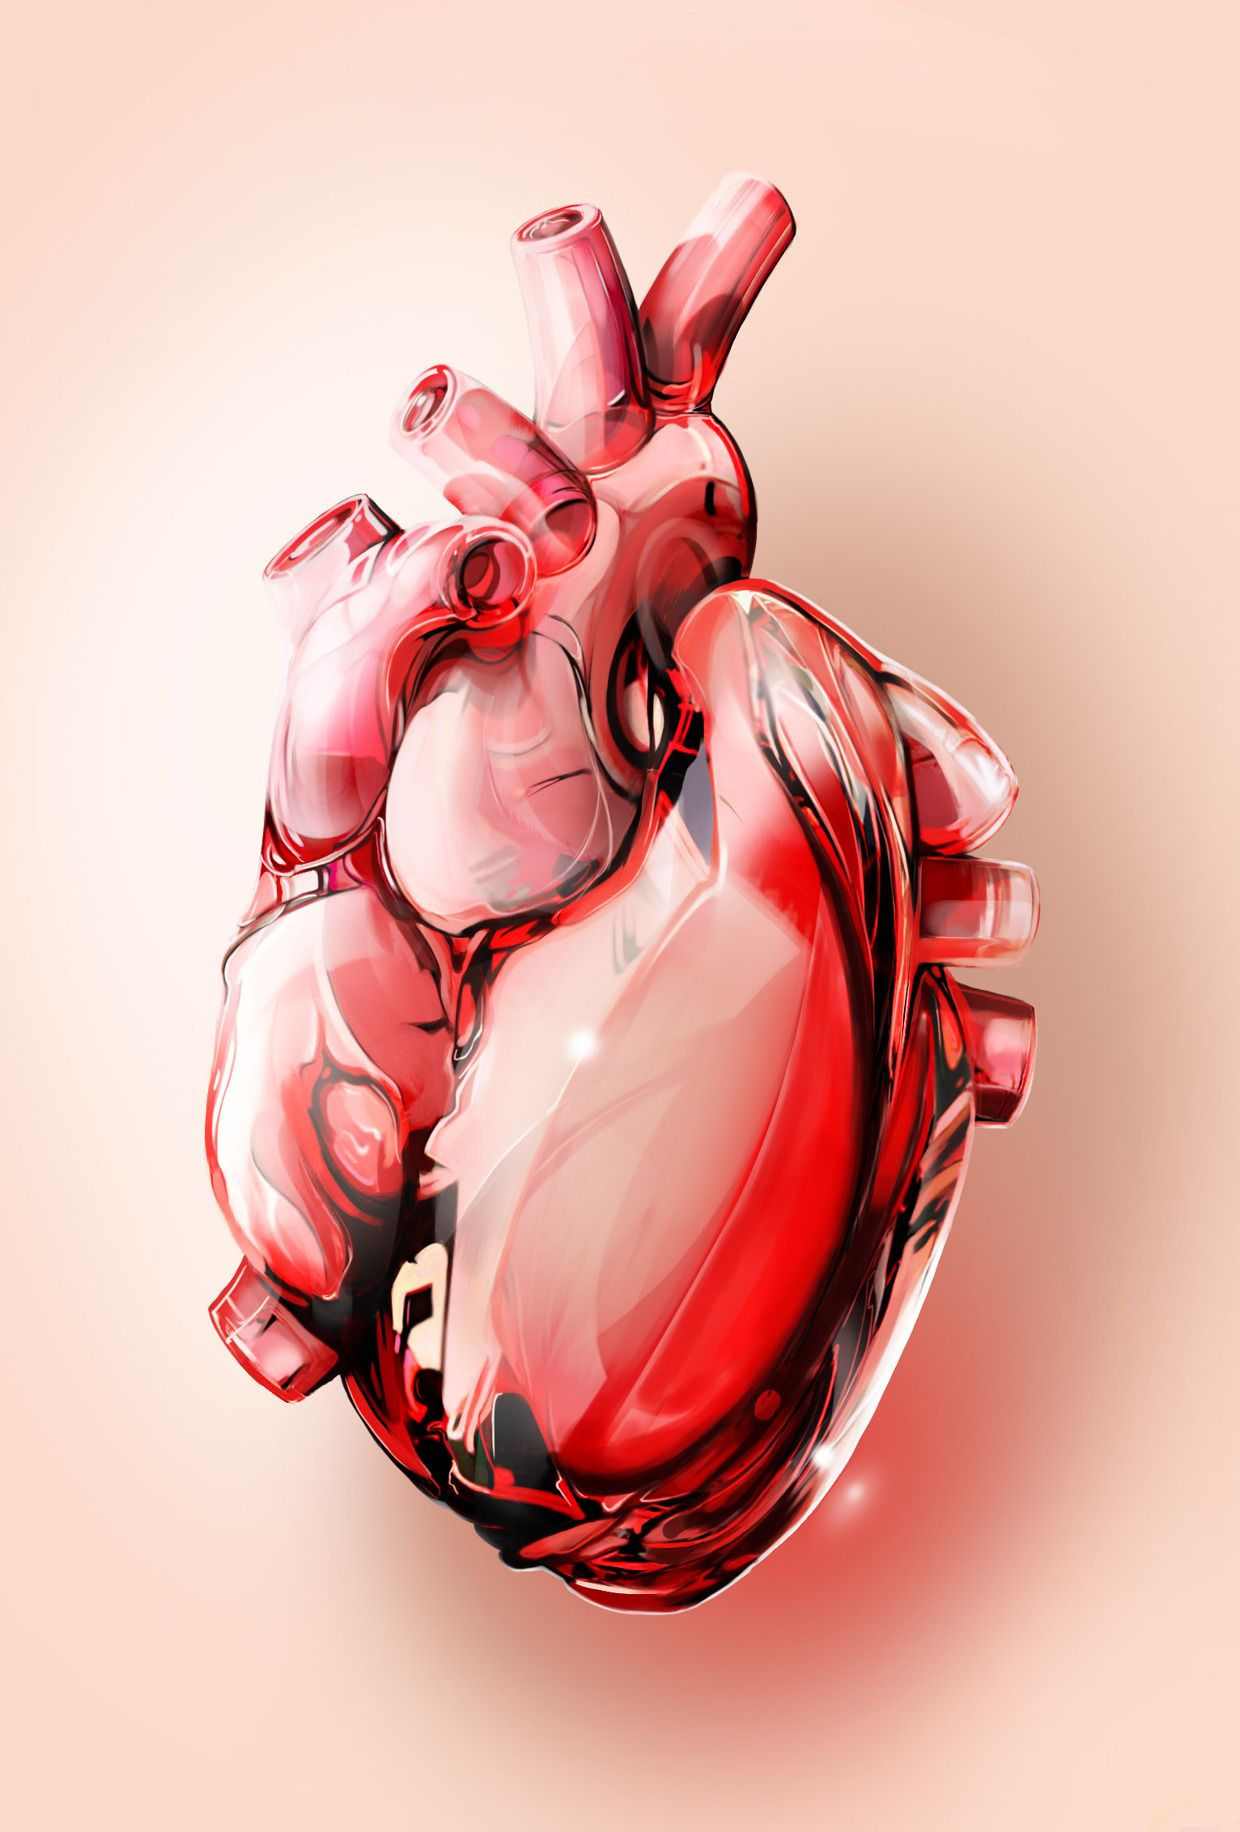 glass heart shown to be precious and fragile aspect of the human glass heart shown to be precious and fragile aspect of the human body